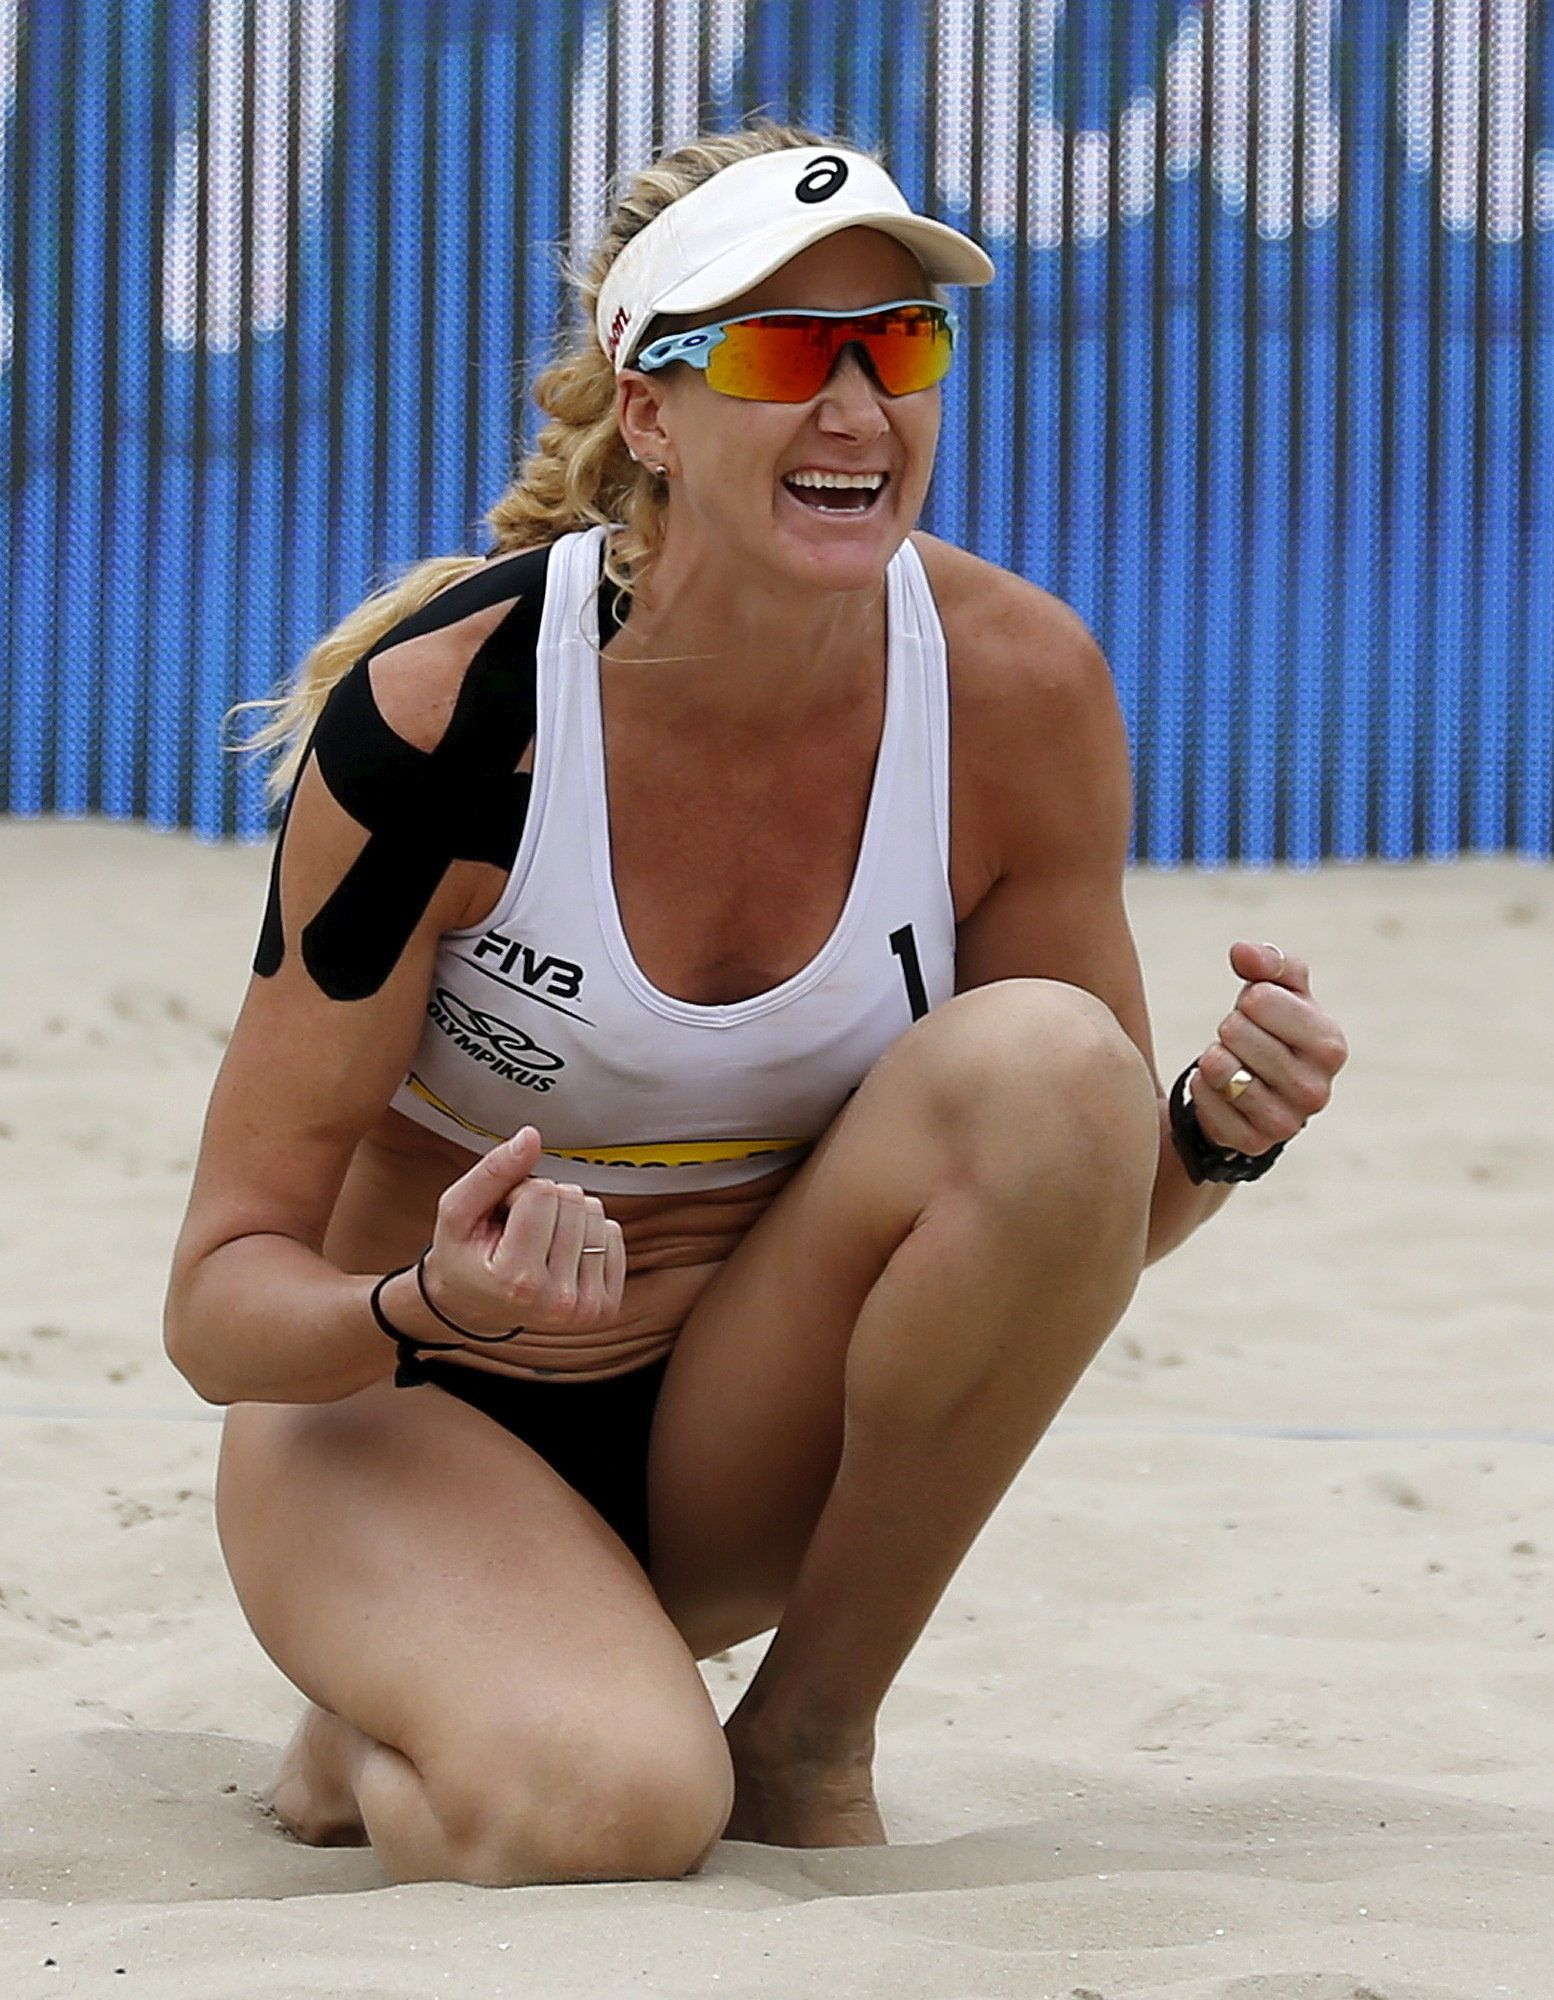 Kerri Walsh of the U.S. celebrates a poiint against Maria Clara Salgado and Carolina Salgado of Brazil during their Rio Open women's beach volleyball match on Copacabana beach in Rio de Janeiro, Brazil, September 4, 2015. The Rio Open is a test event for the Rio 2016 Olympic Games. REUTERS/Sergio Moraes